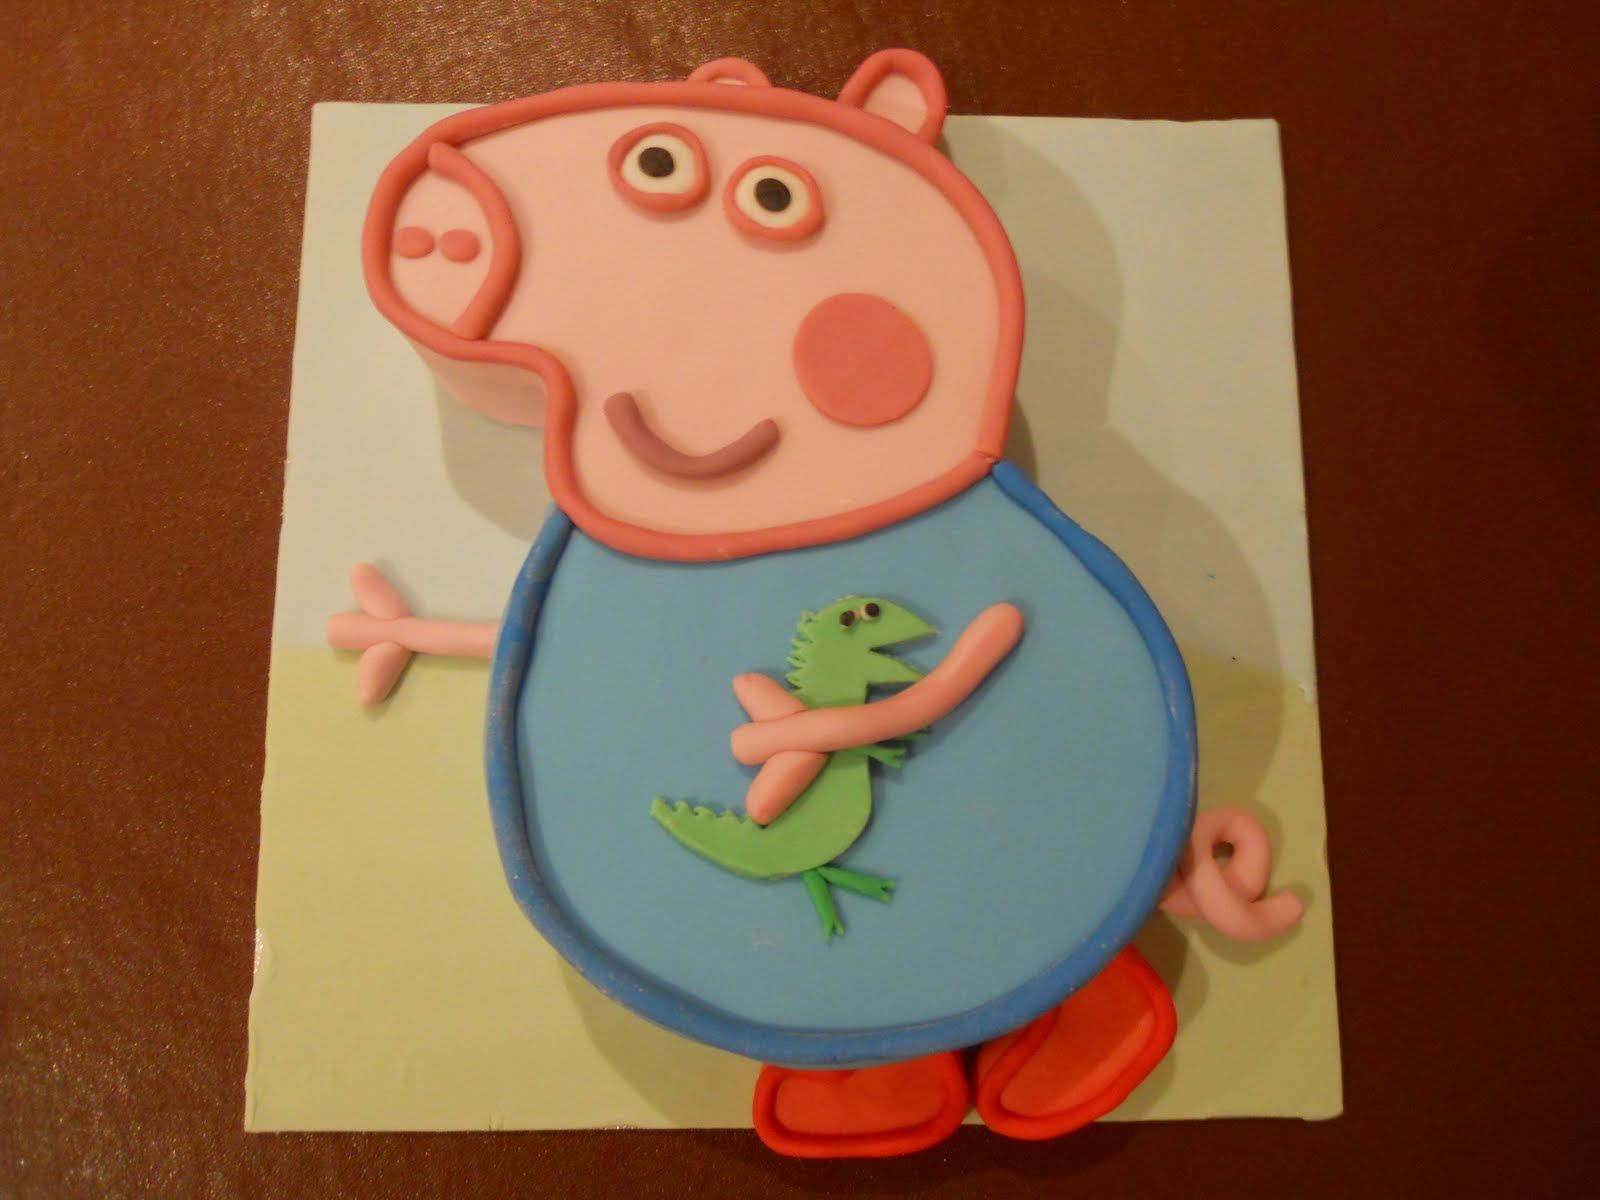 Pe peppa pig coloring pictures to print - Pin Peppa Pig George Cake